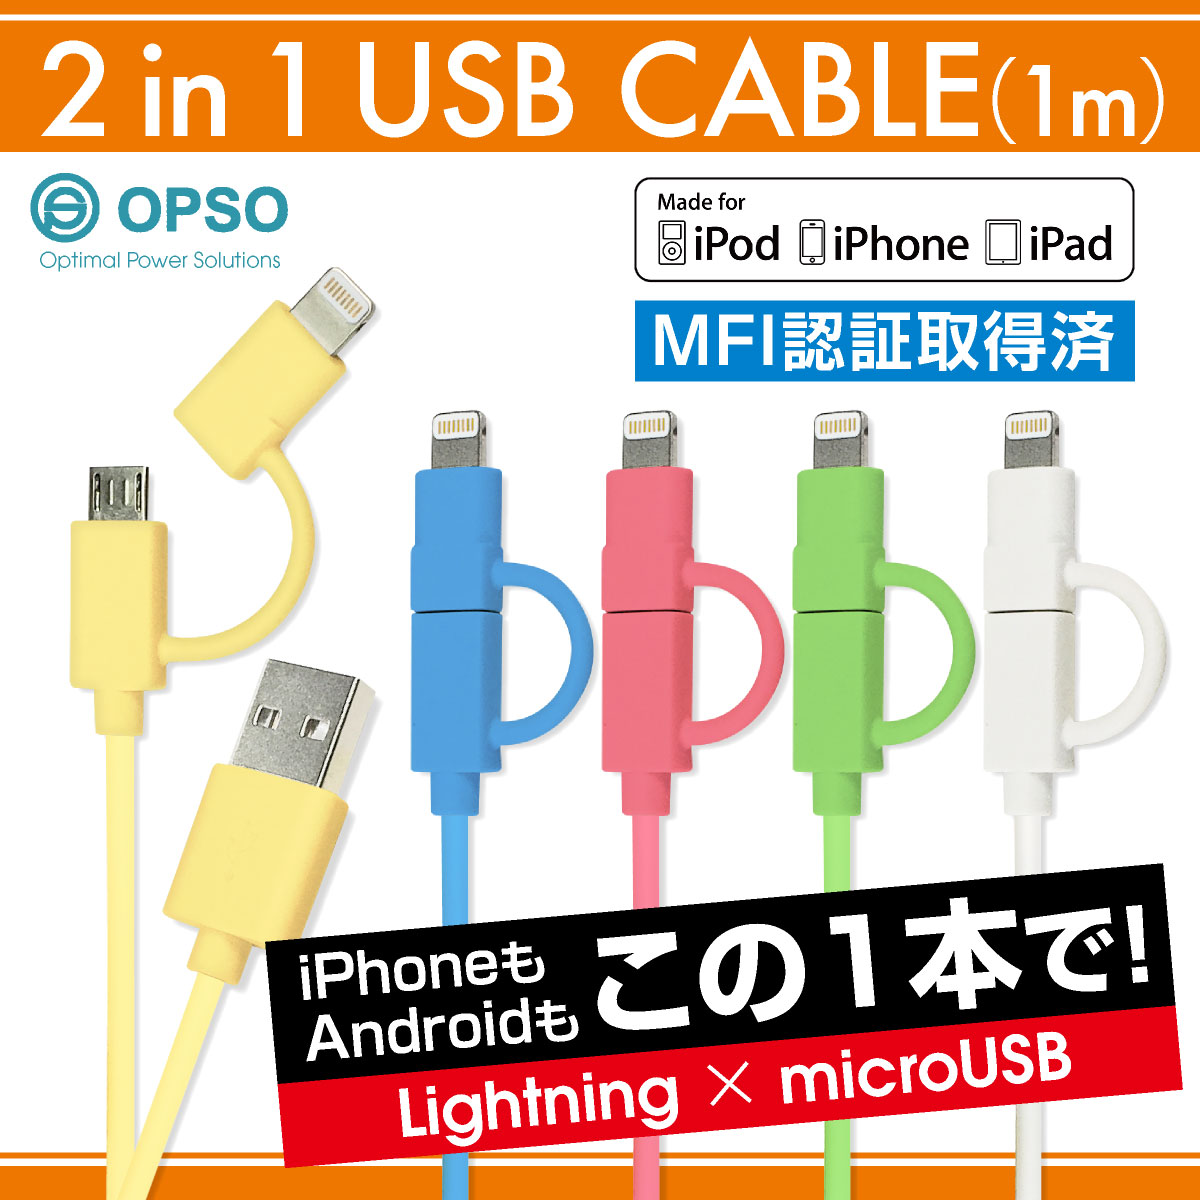 MFI認証 Lightning micro ケーブル iPhone USB 1m ライトニングケーブル マイクロケーブル android iPhone6s iPhone6 iPhone SE iPhone5s opso-cable-2way